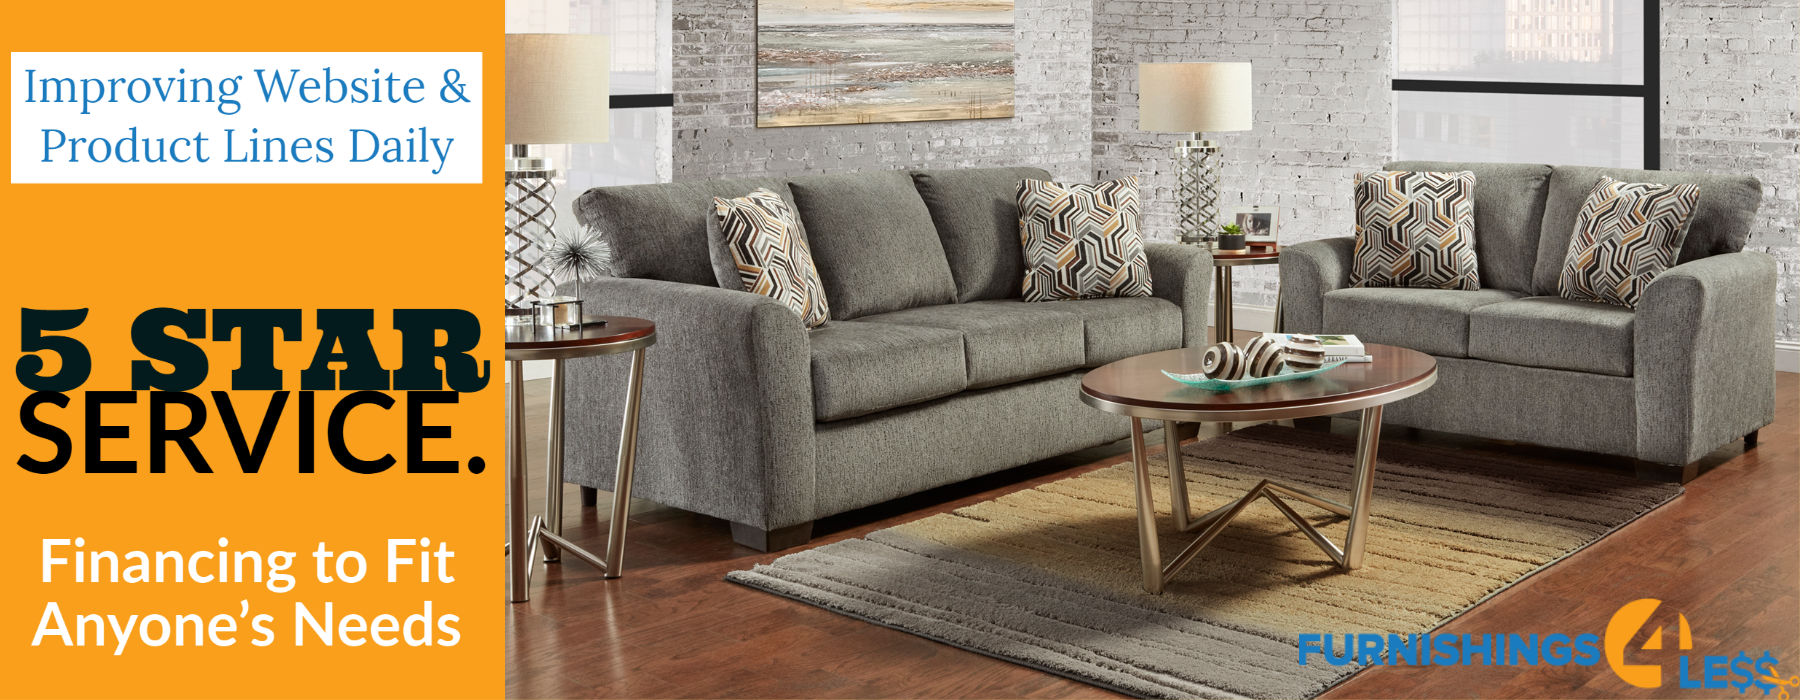 Furnishings 4 Less logo furniture mattresses rugs and more 4Less